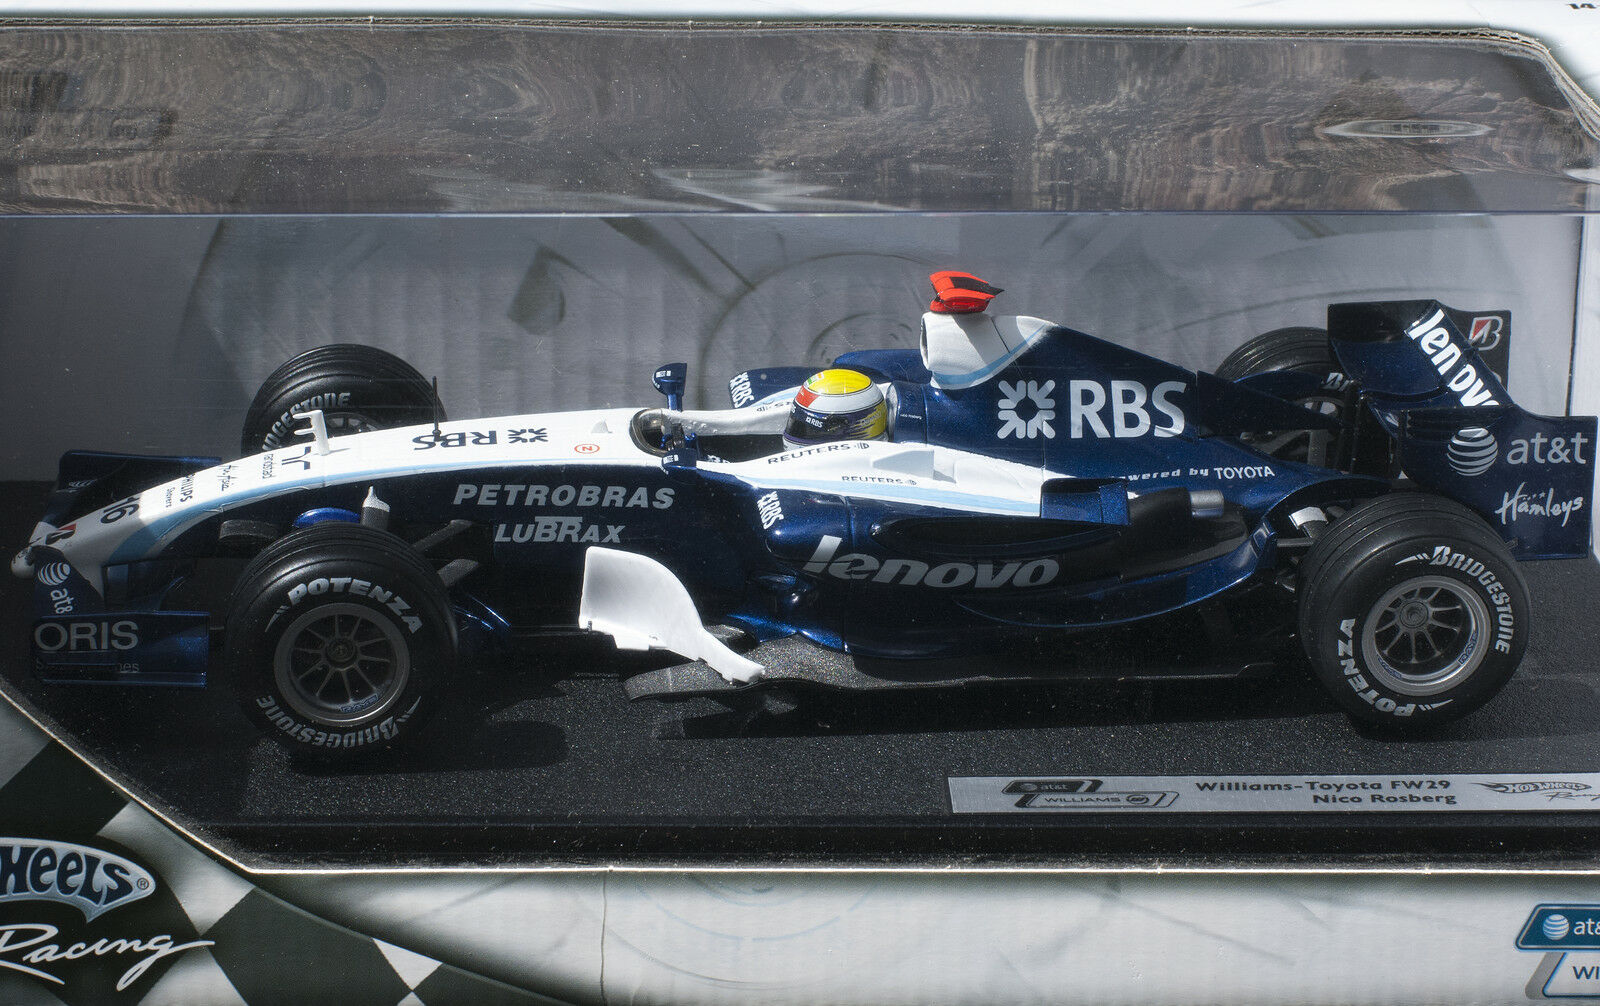 Nico Rosberg Williams-Toyota fw29, 2007, Hot Wheels, NUOVO + OVP